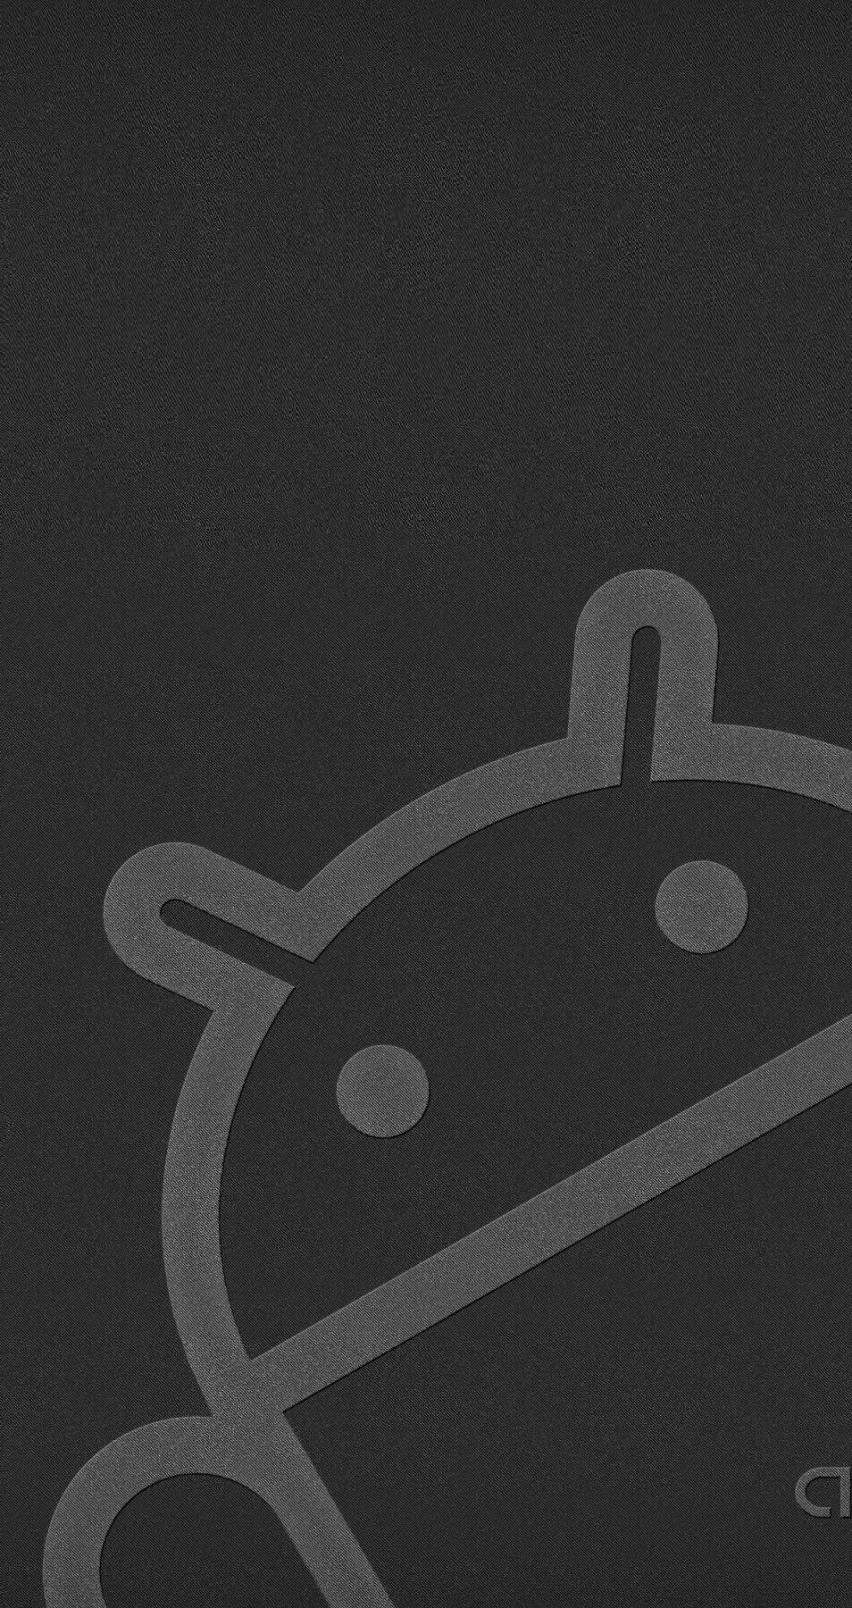 Android Logo Wallpaper for Apple iPhone 6 / 6s